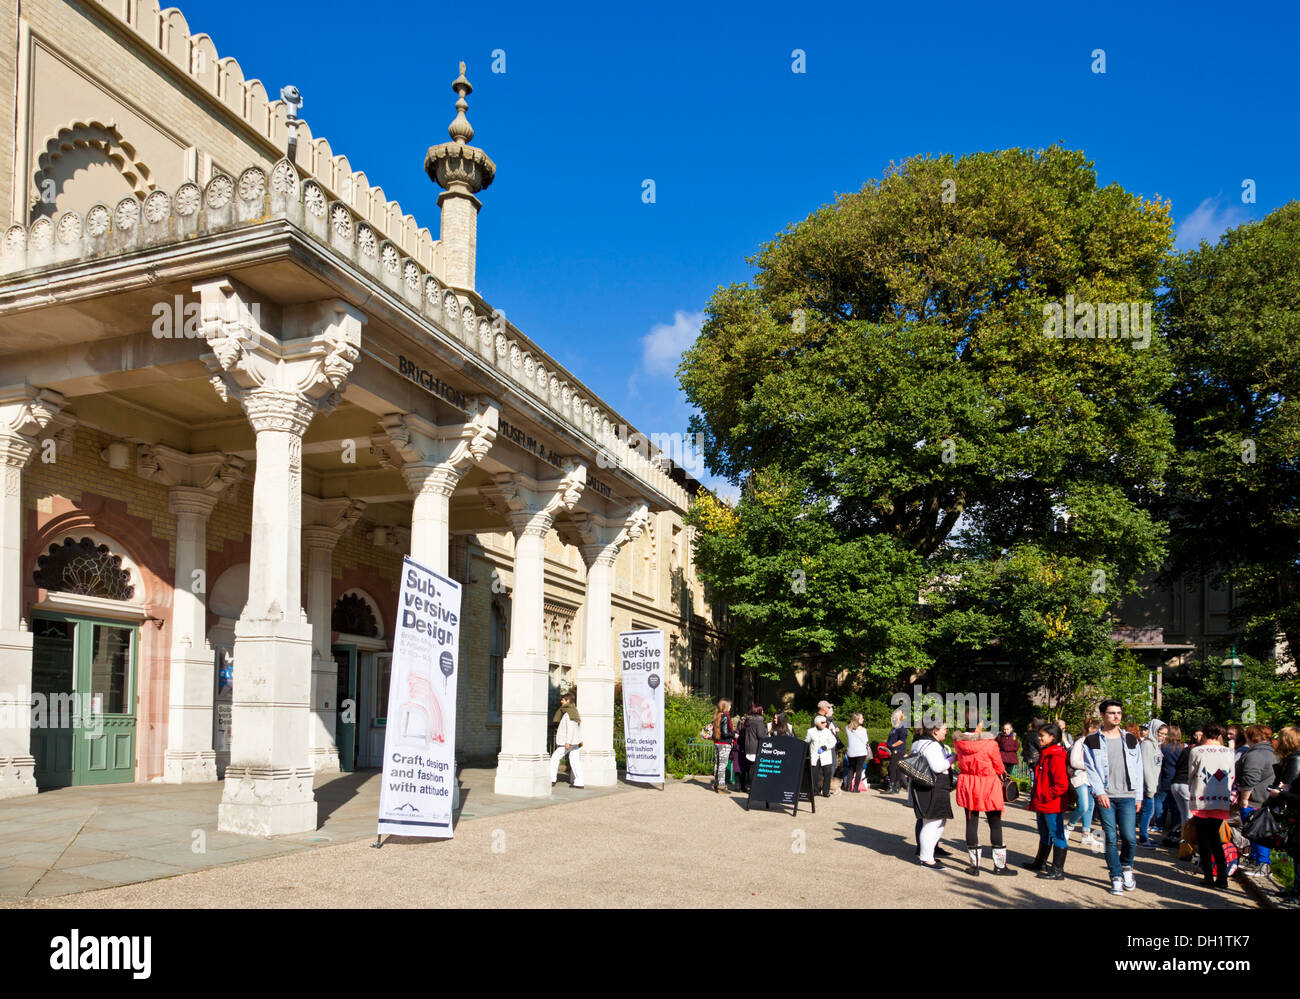 Brighton Museum and art Gallery in the Royal Pavilion Gardens Brighton West Sussex England UK GB EU Europe - Stock Image